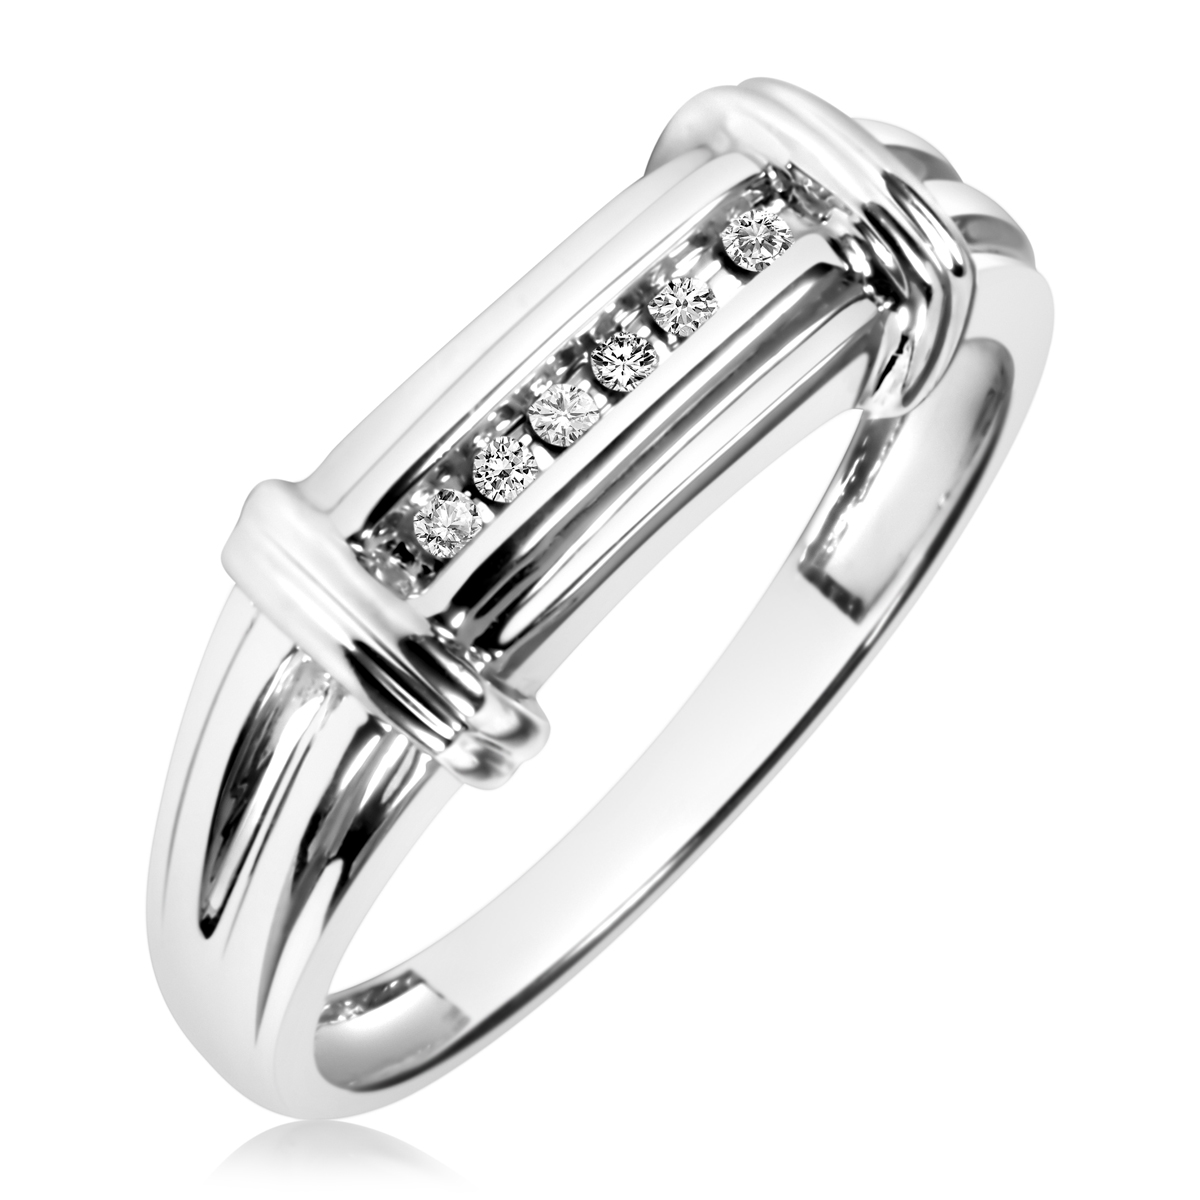 1/10 CT. T.W. Round Cut Diamond Men's Wedding Band 10K White Gold- Size 8